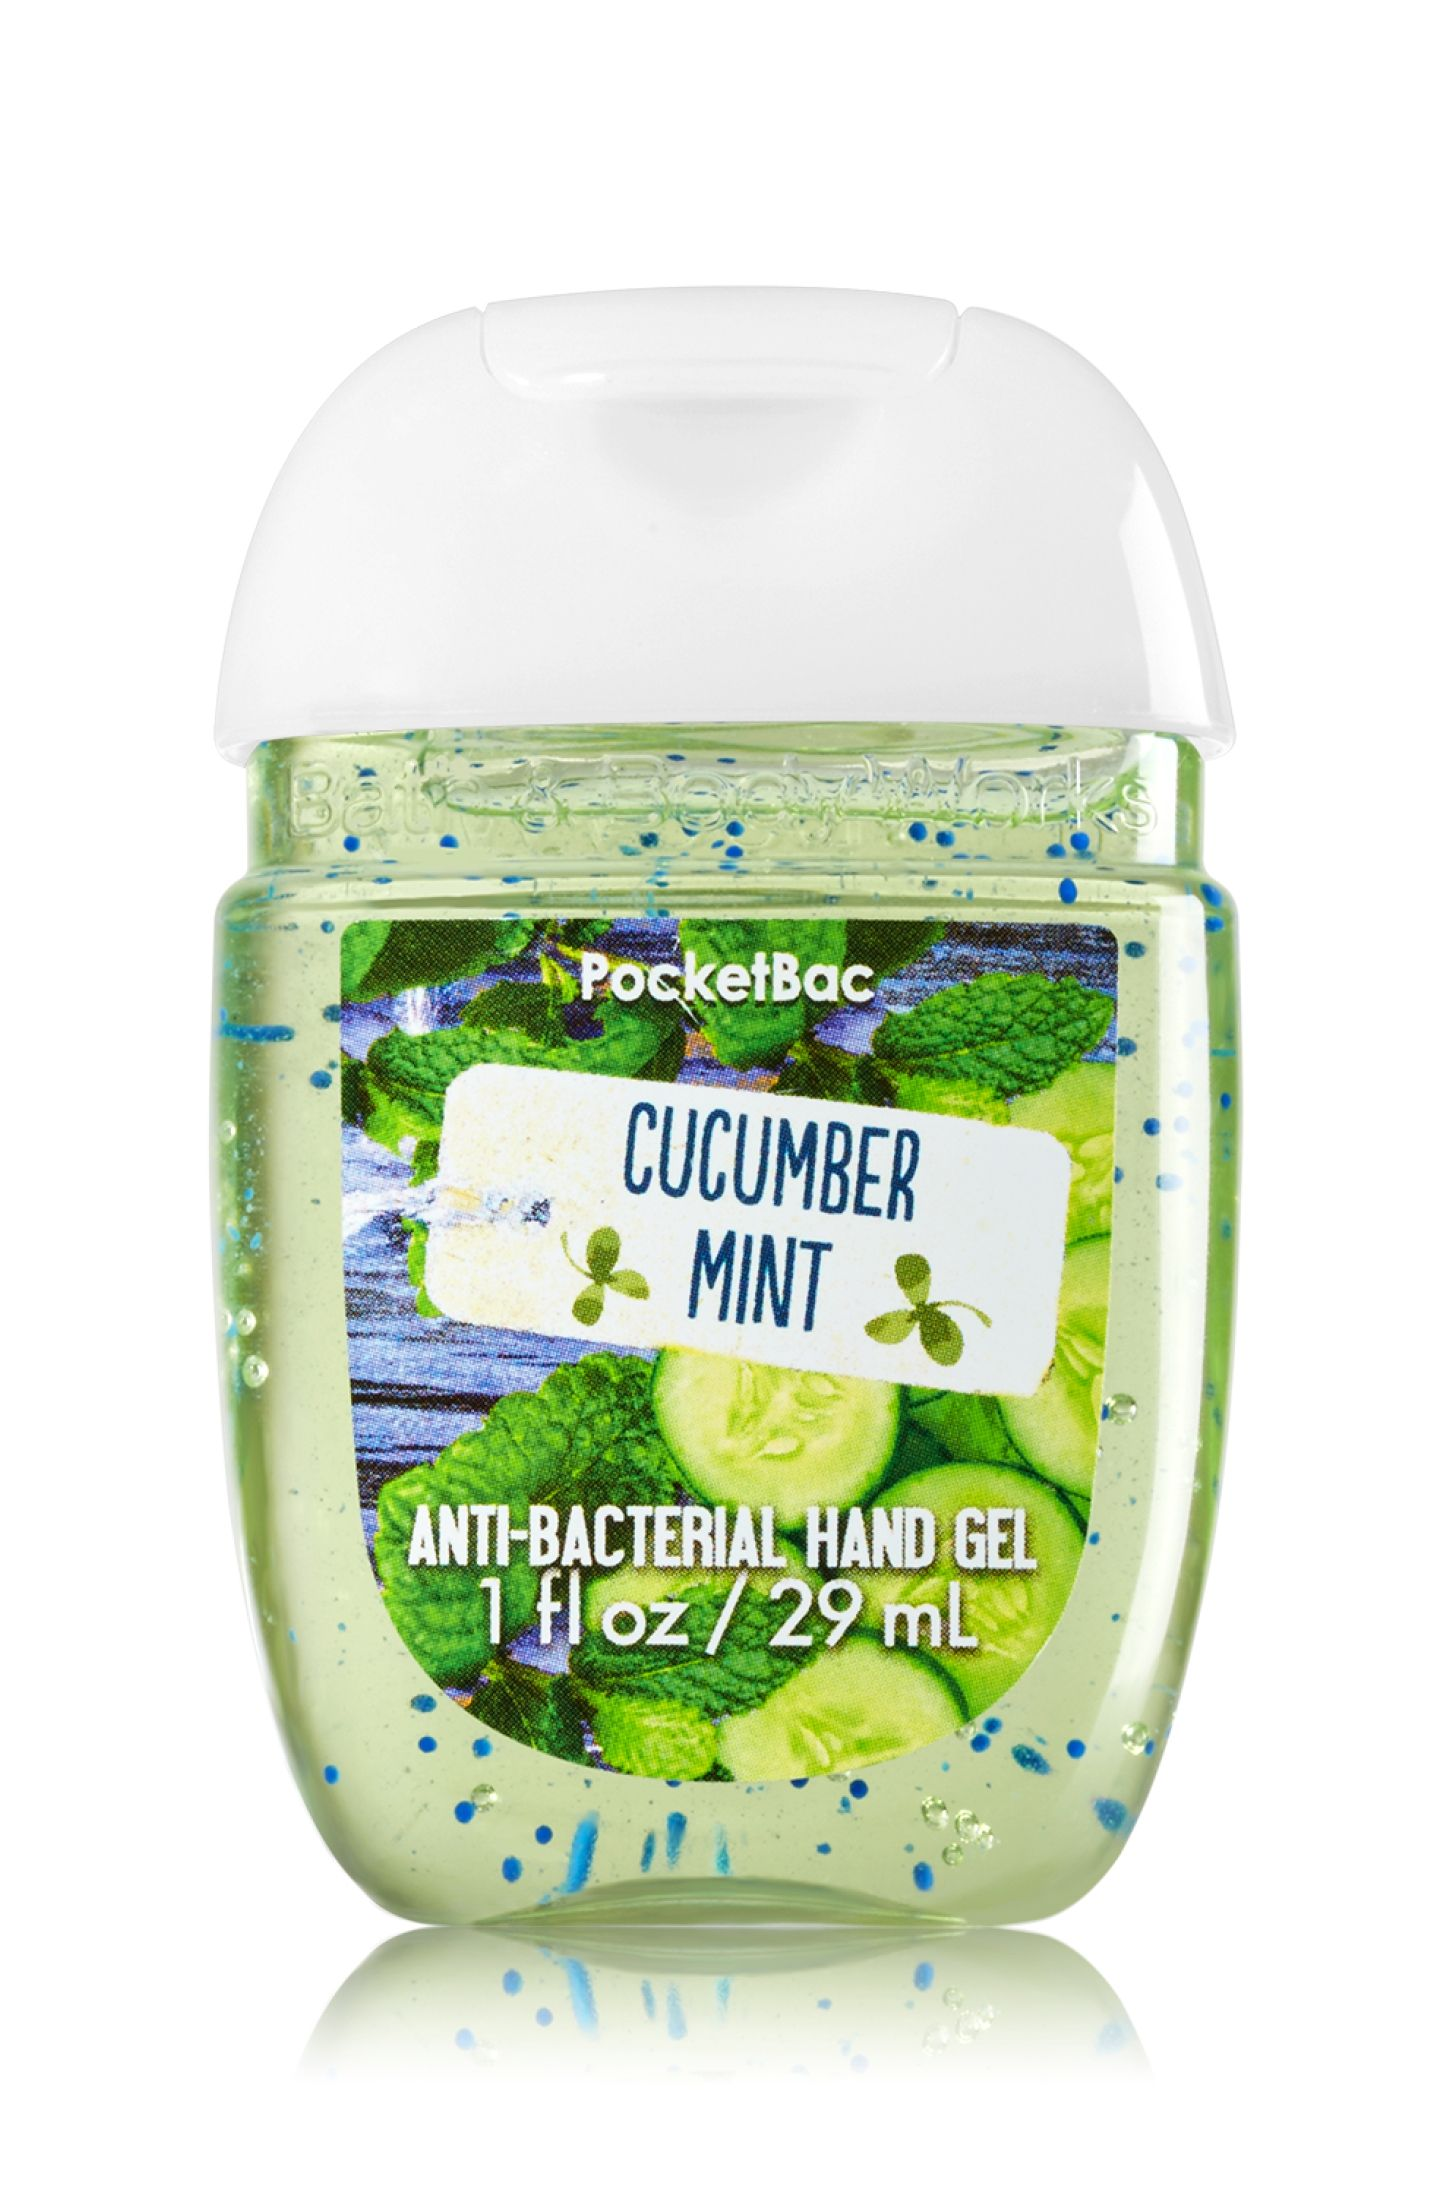 Cucumber Mint Anti Bacterial Hand Gel Bath And Body Bath And